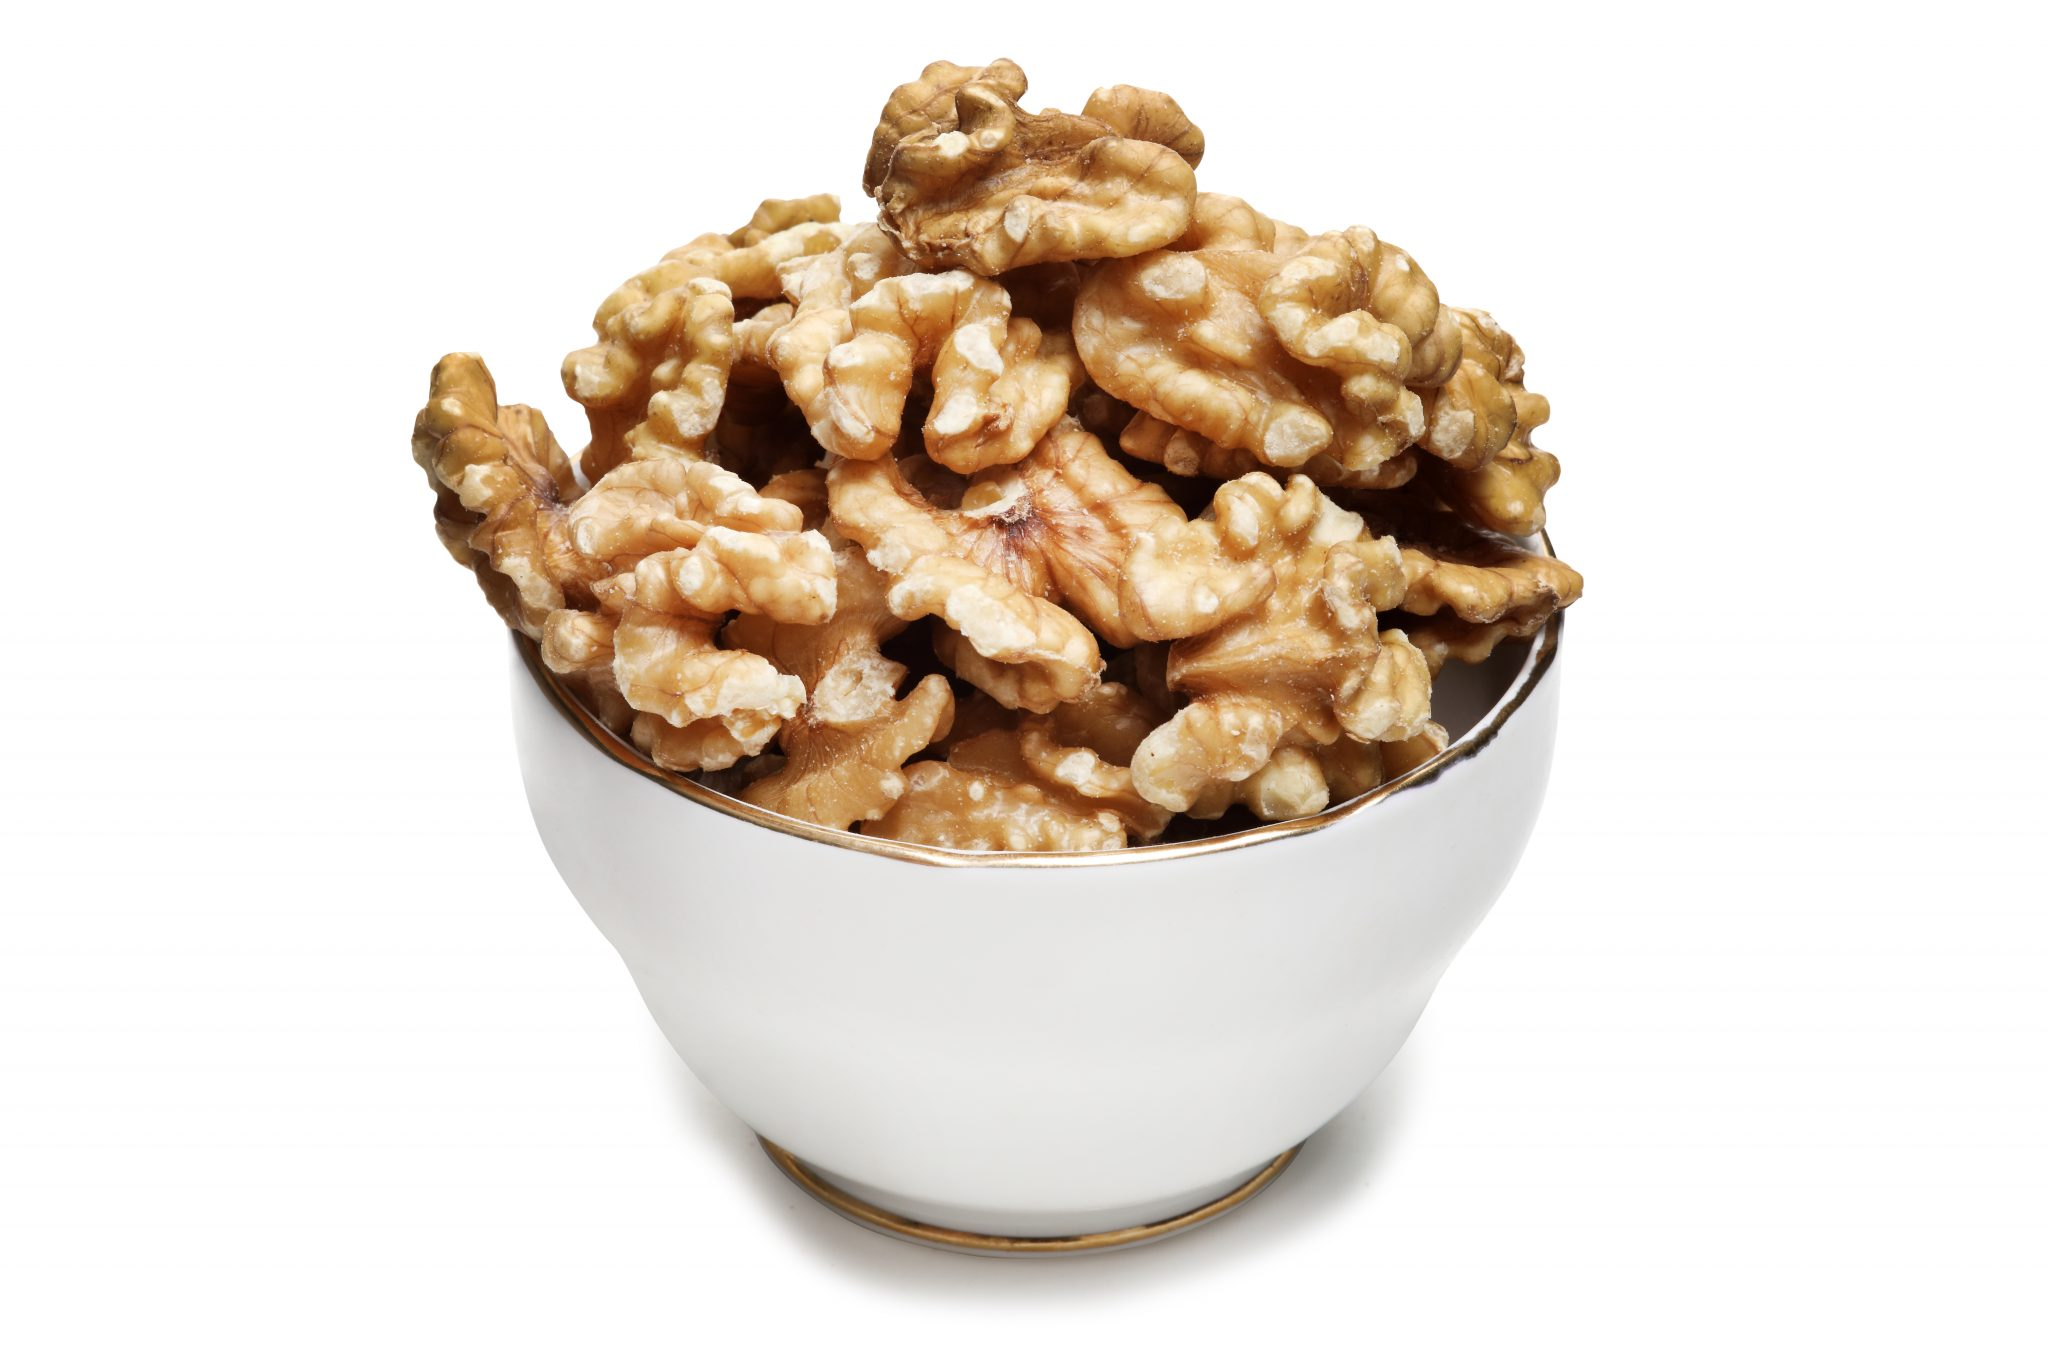 Chandras healthy vegan snack walnut halves in a white glass bowl